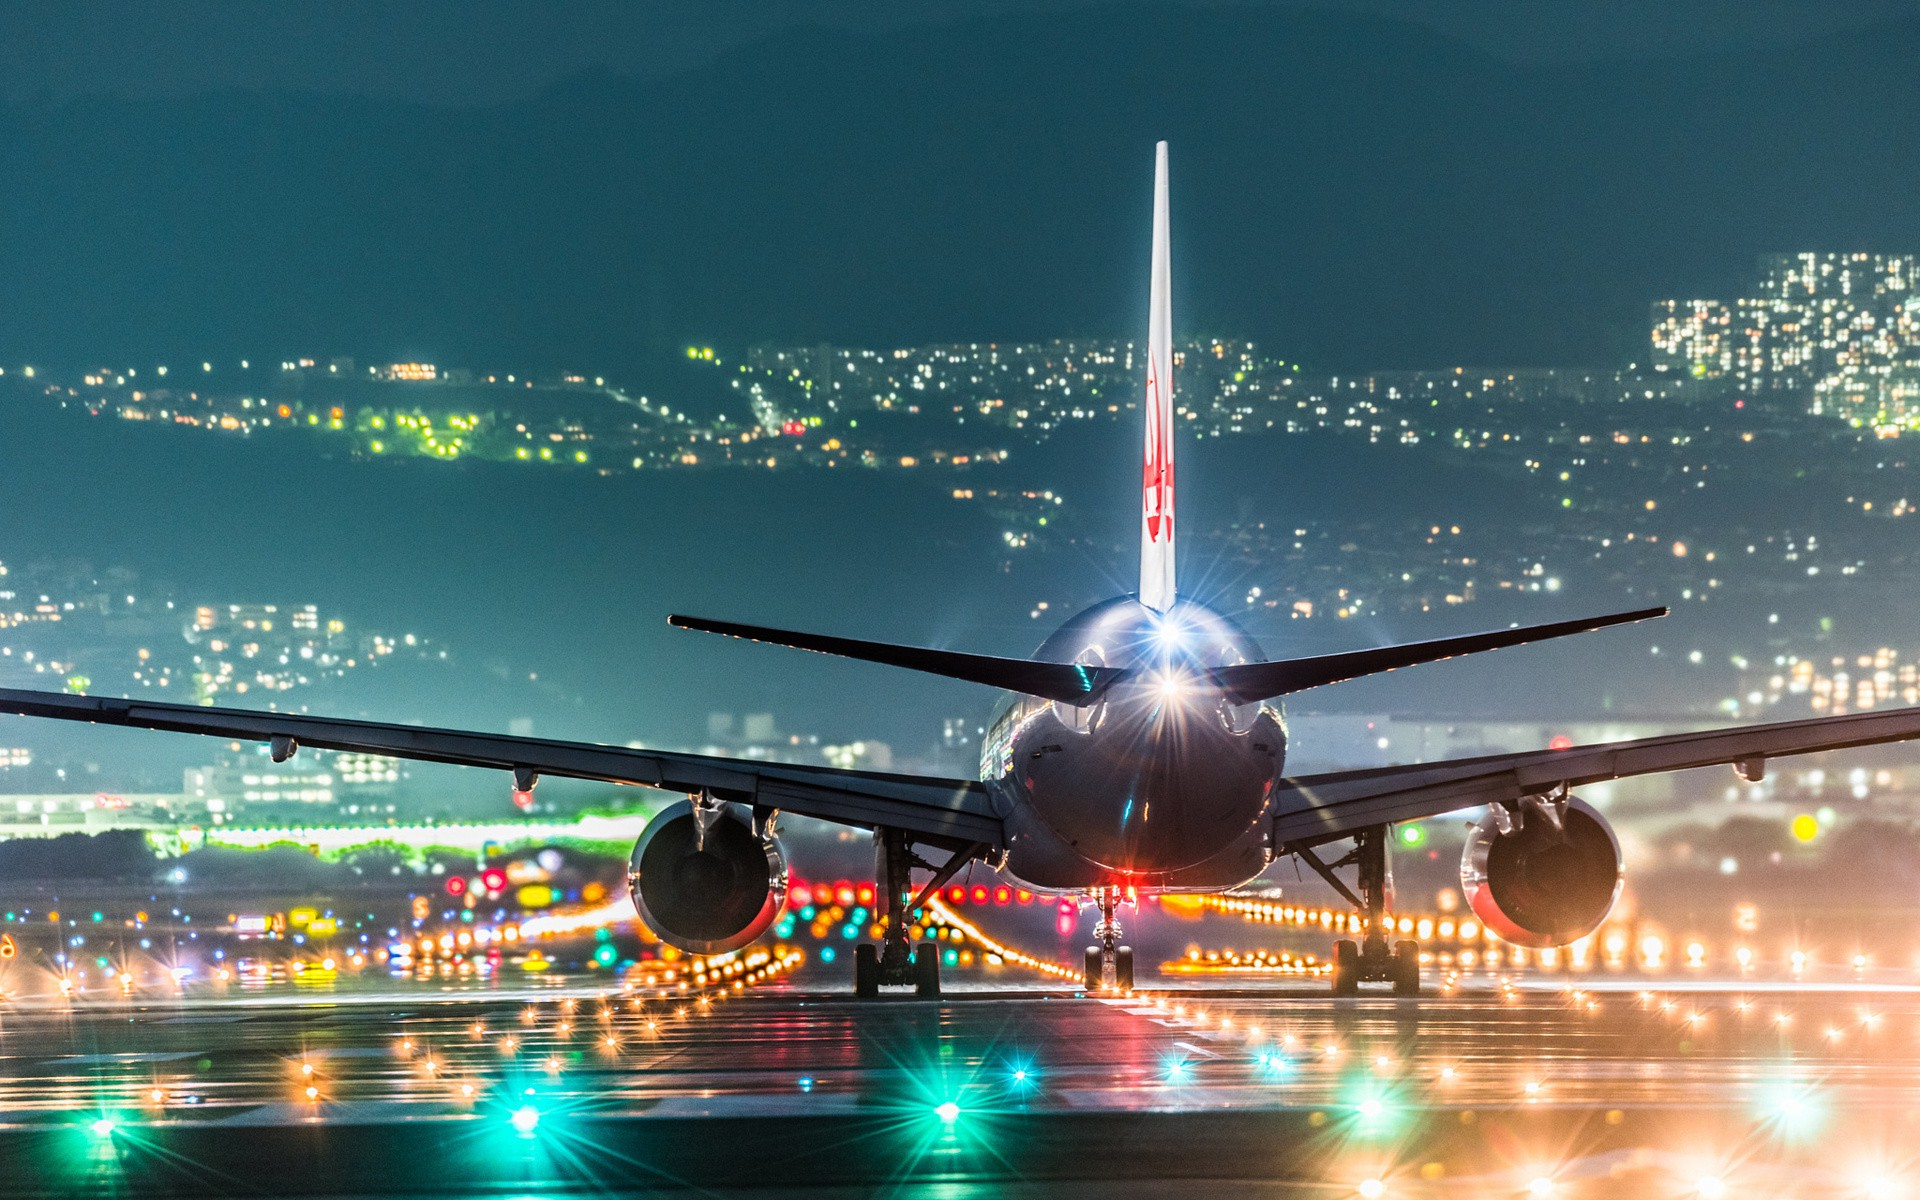 Airport Wallpaper Aeroplane Hd Wallpapers For Pc 399469